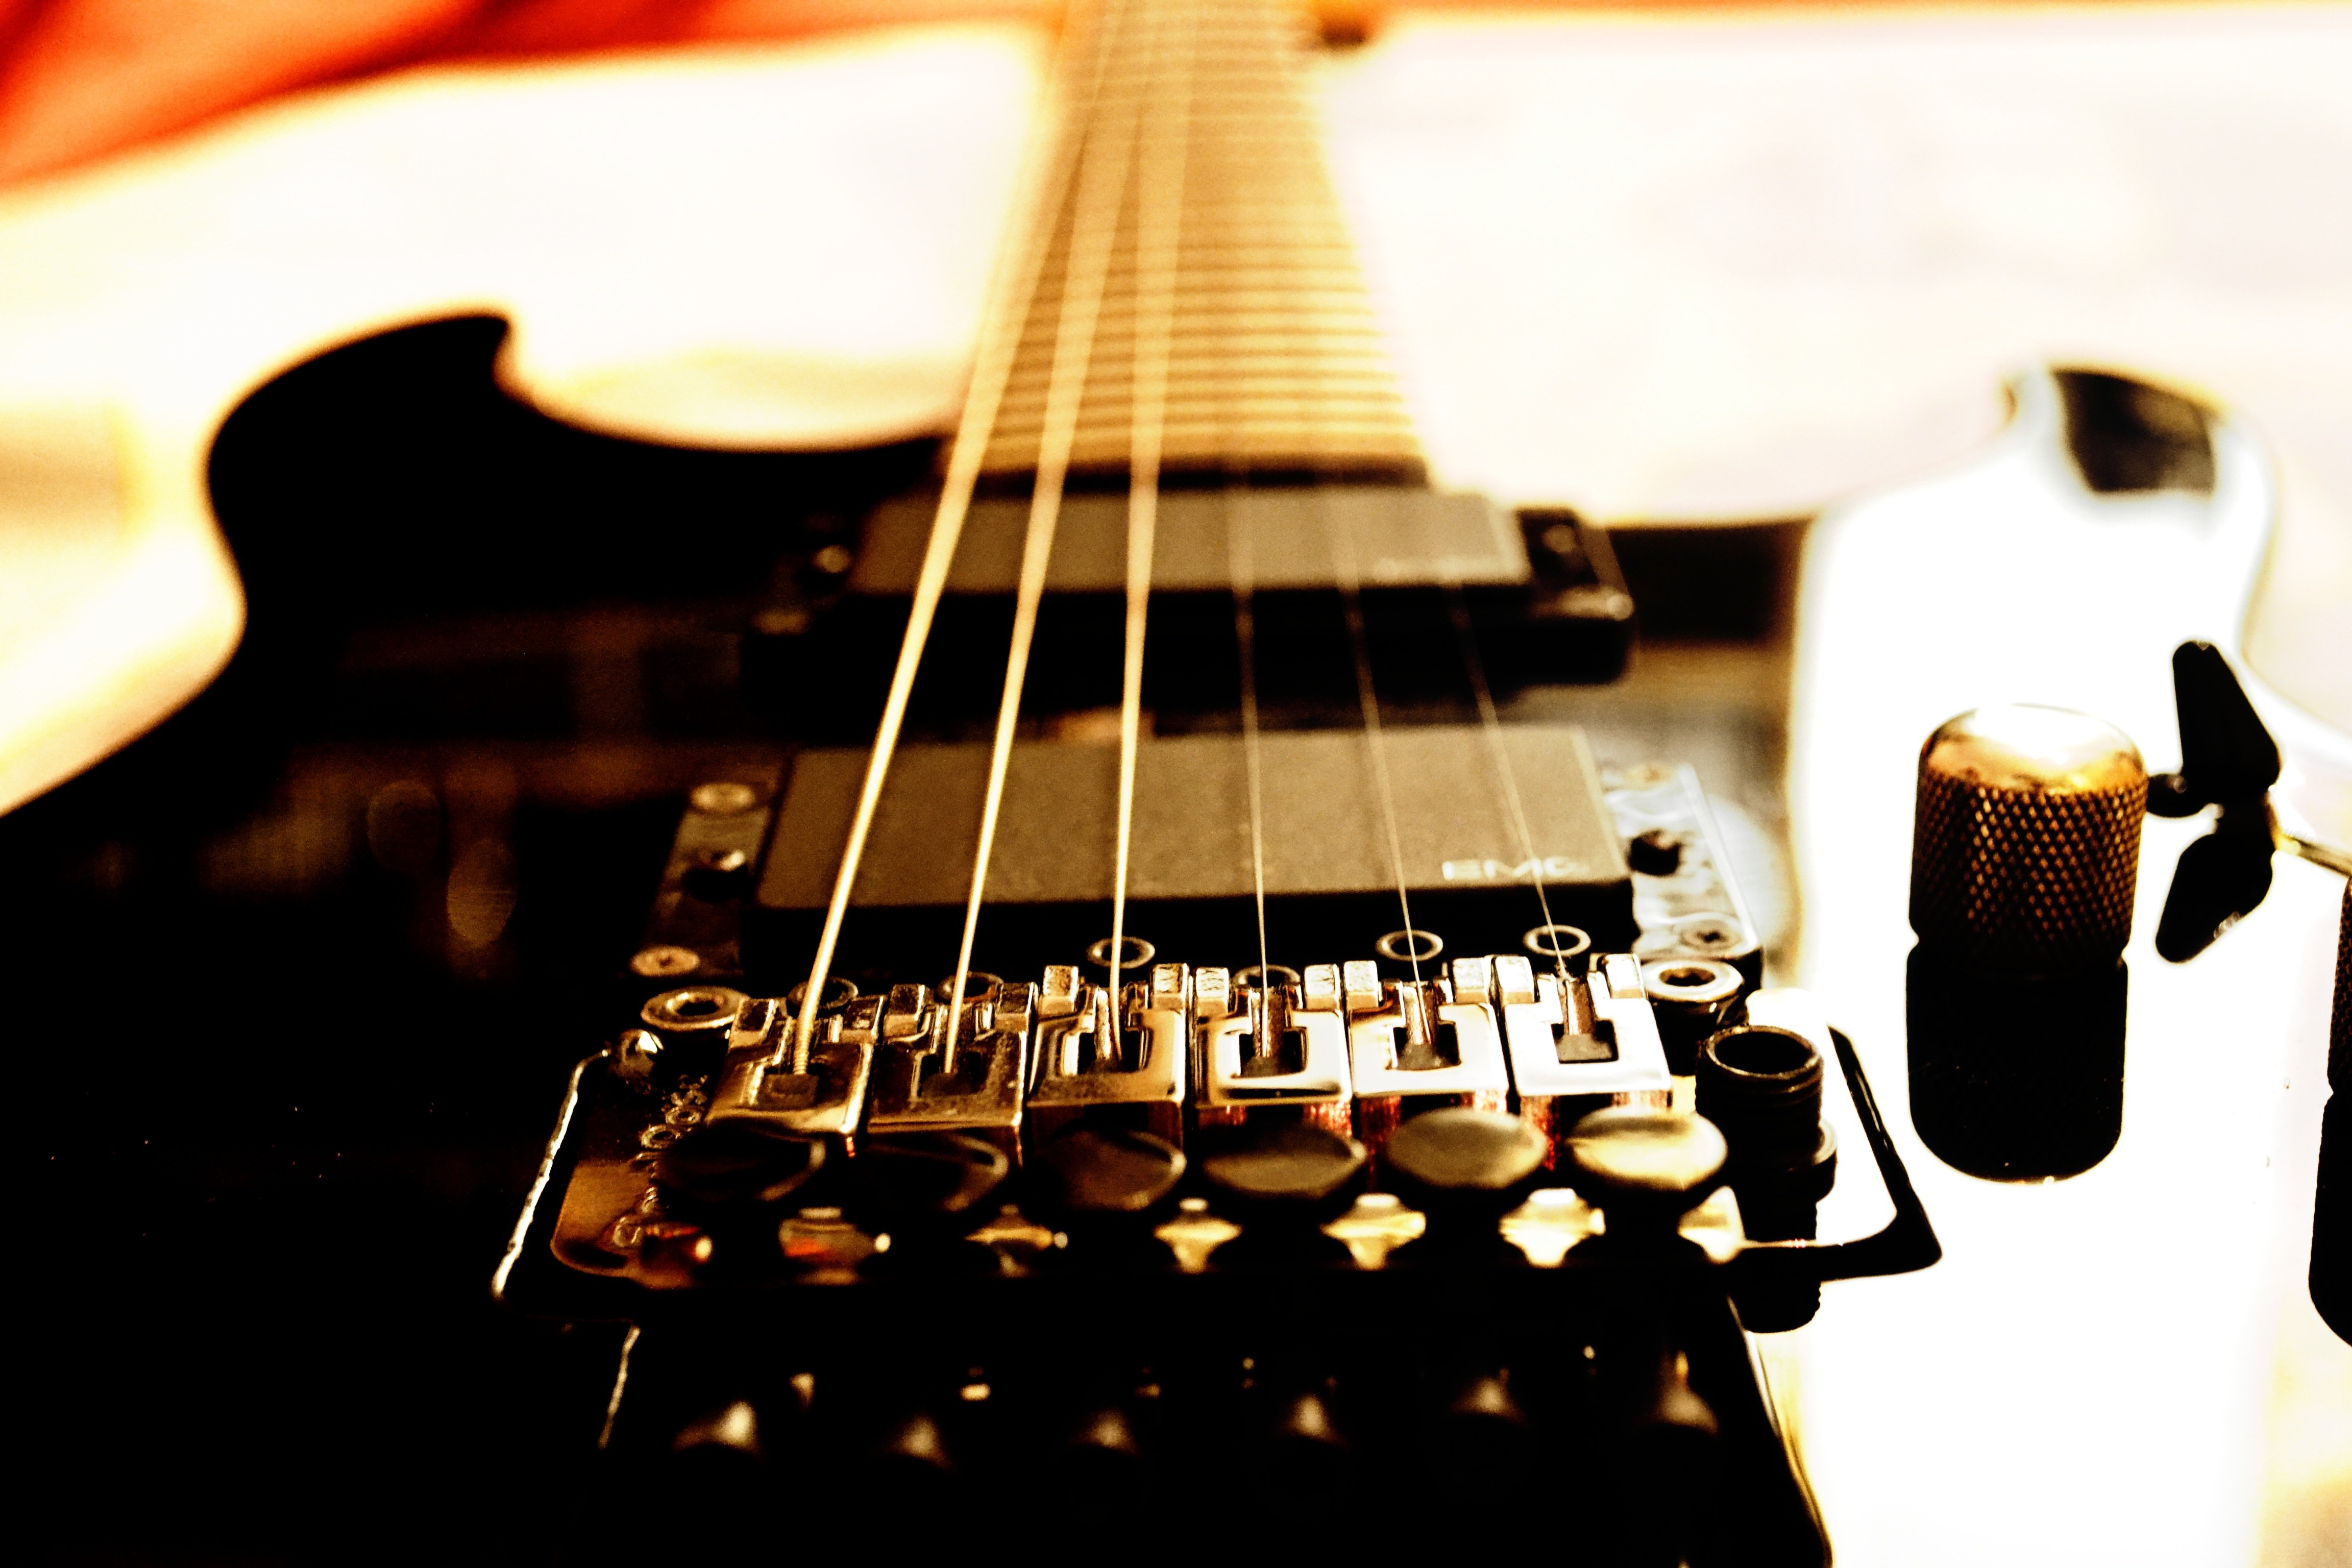 Electric gibson fender Guitar reflection strings macro ...